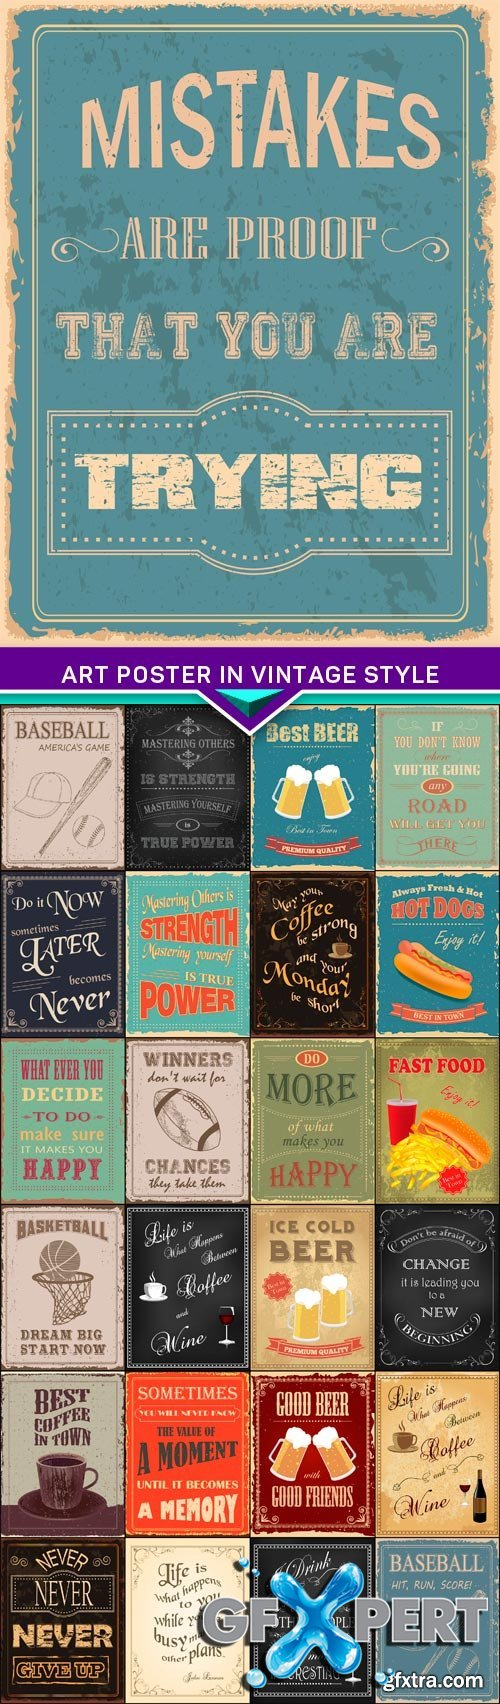 Art poster in vintage style 25x EPS